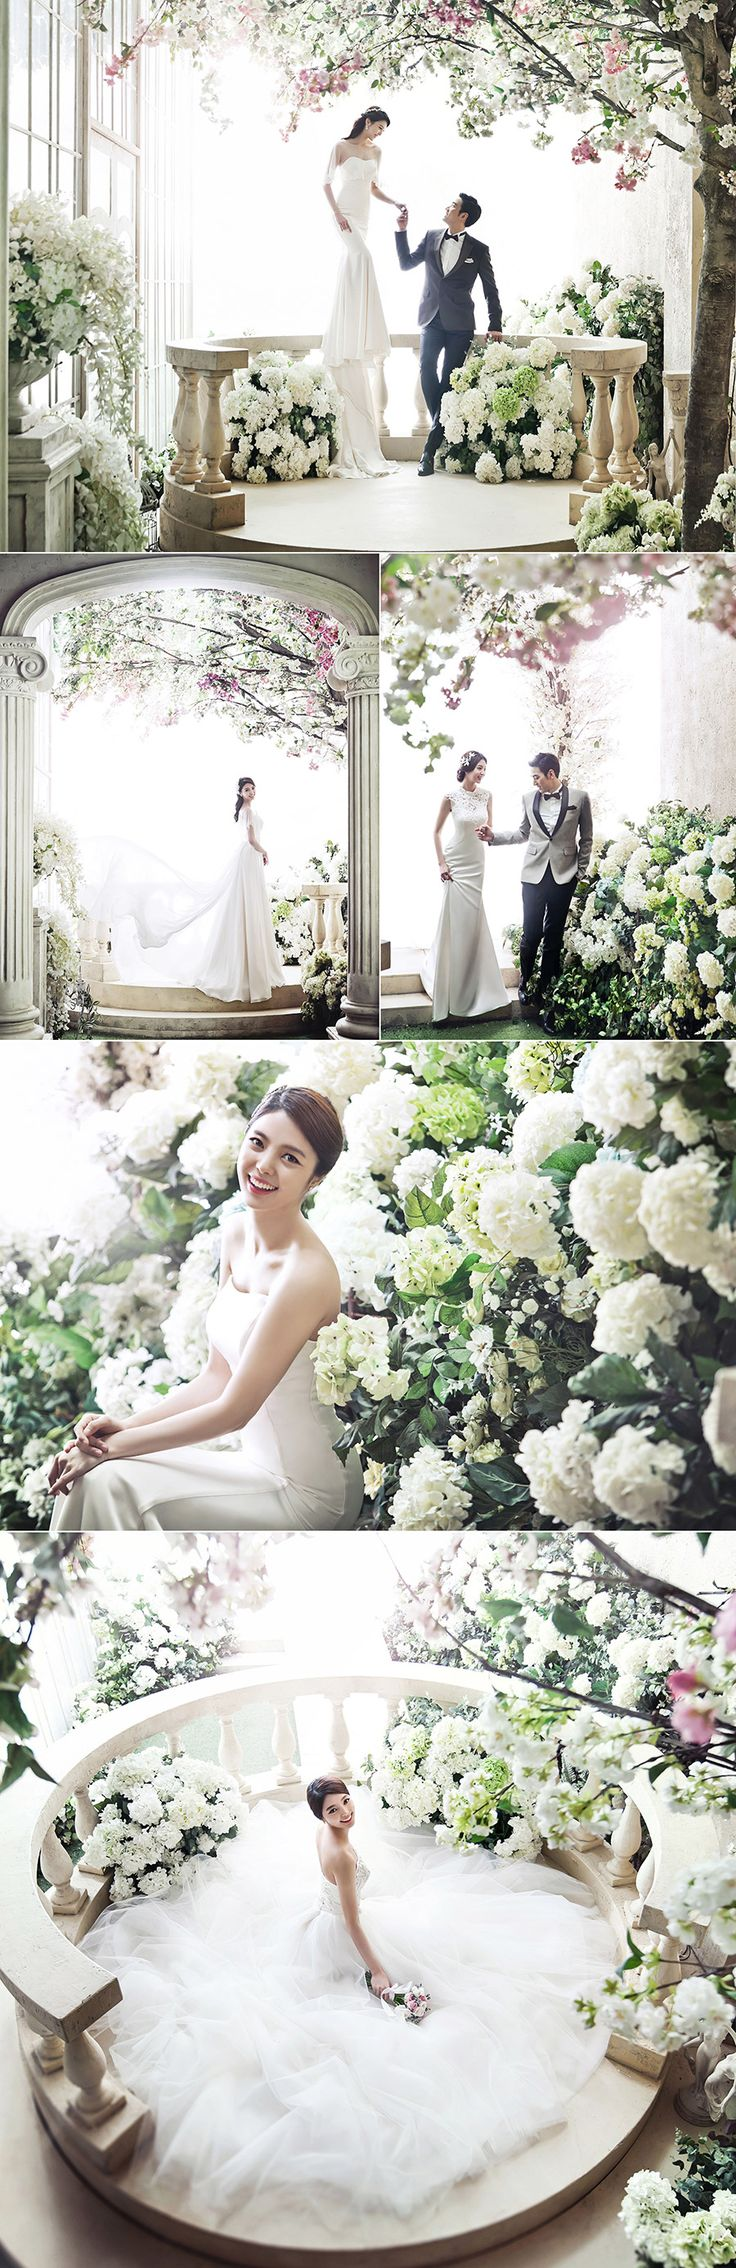 Floral / garden theme korean wedding photography concepts